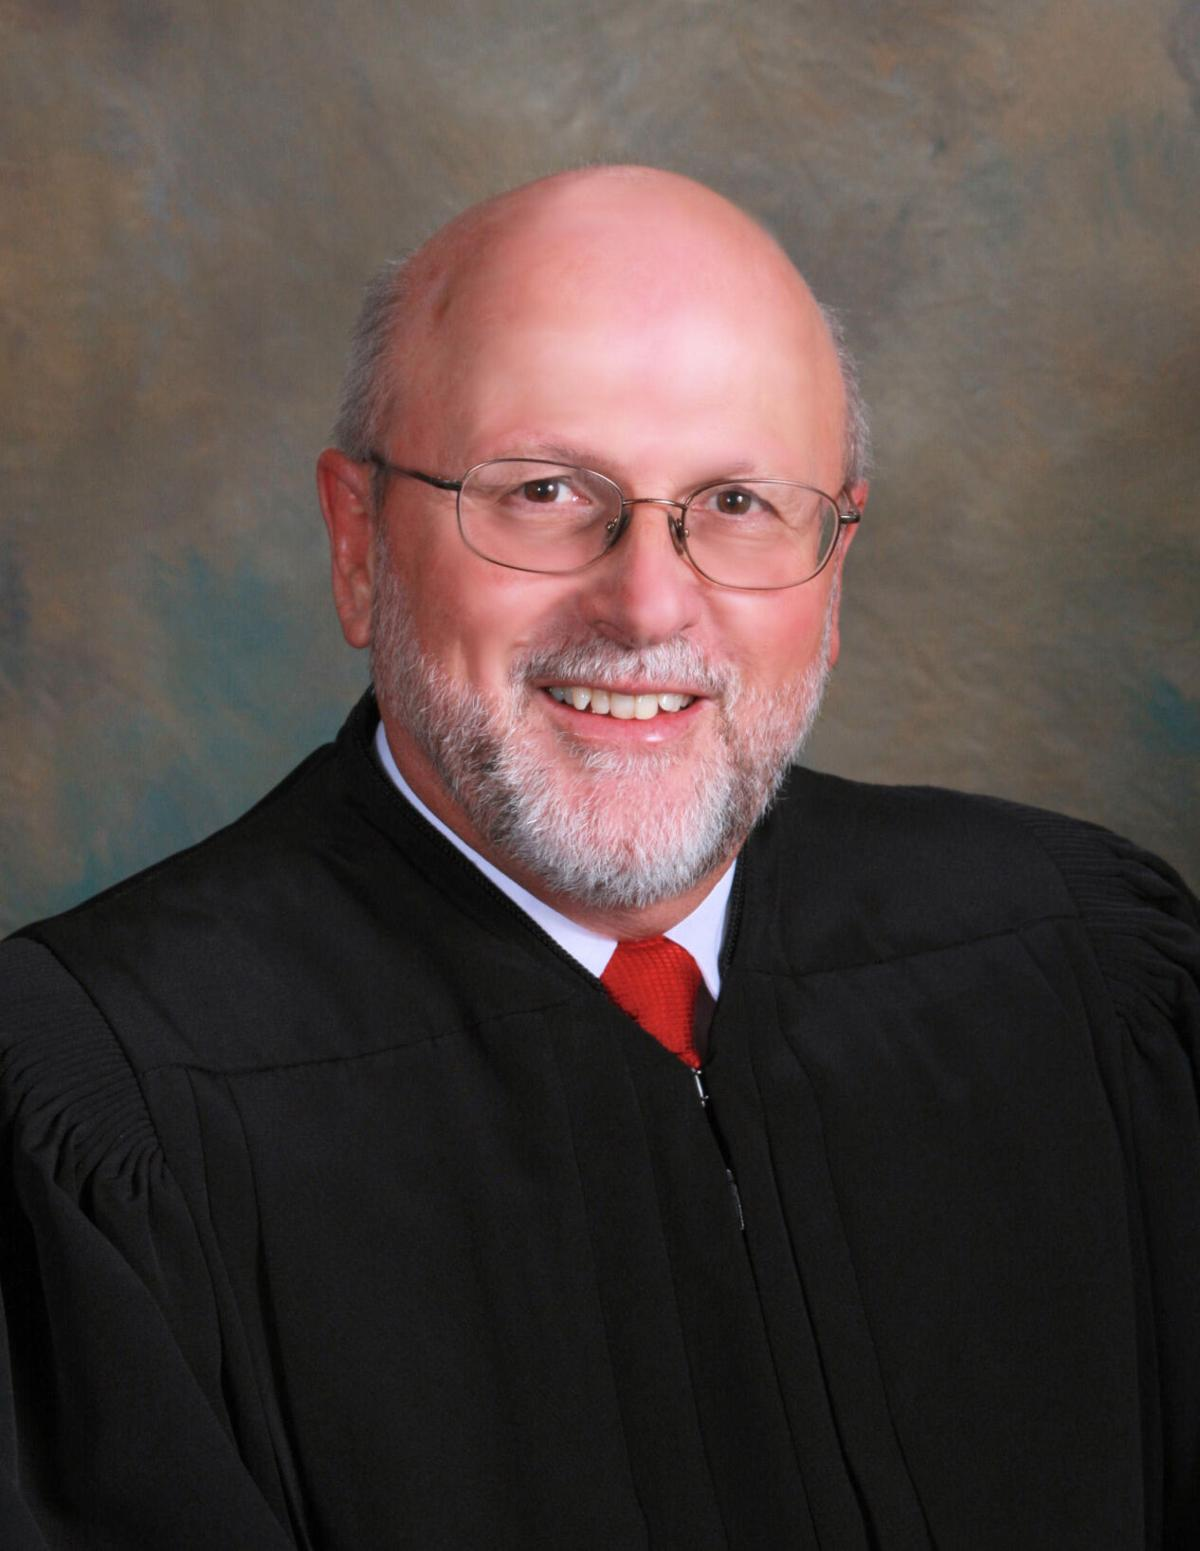 Judge Jude Gravois